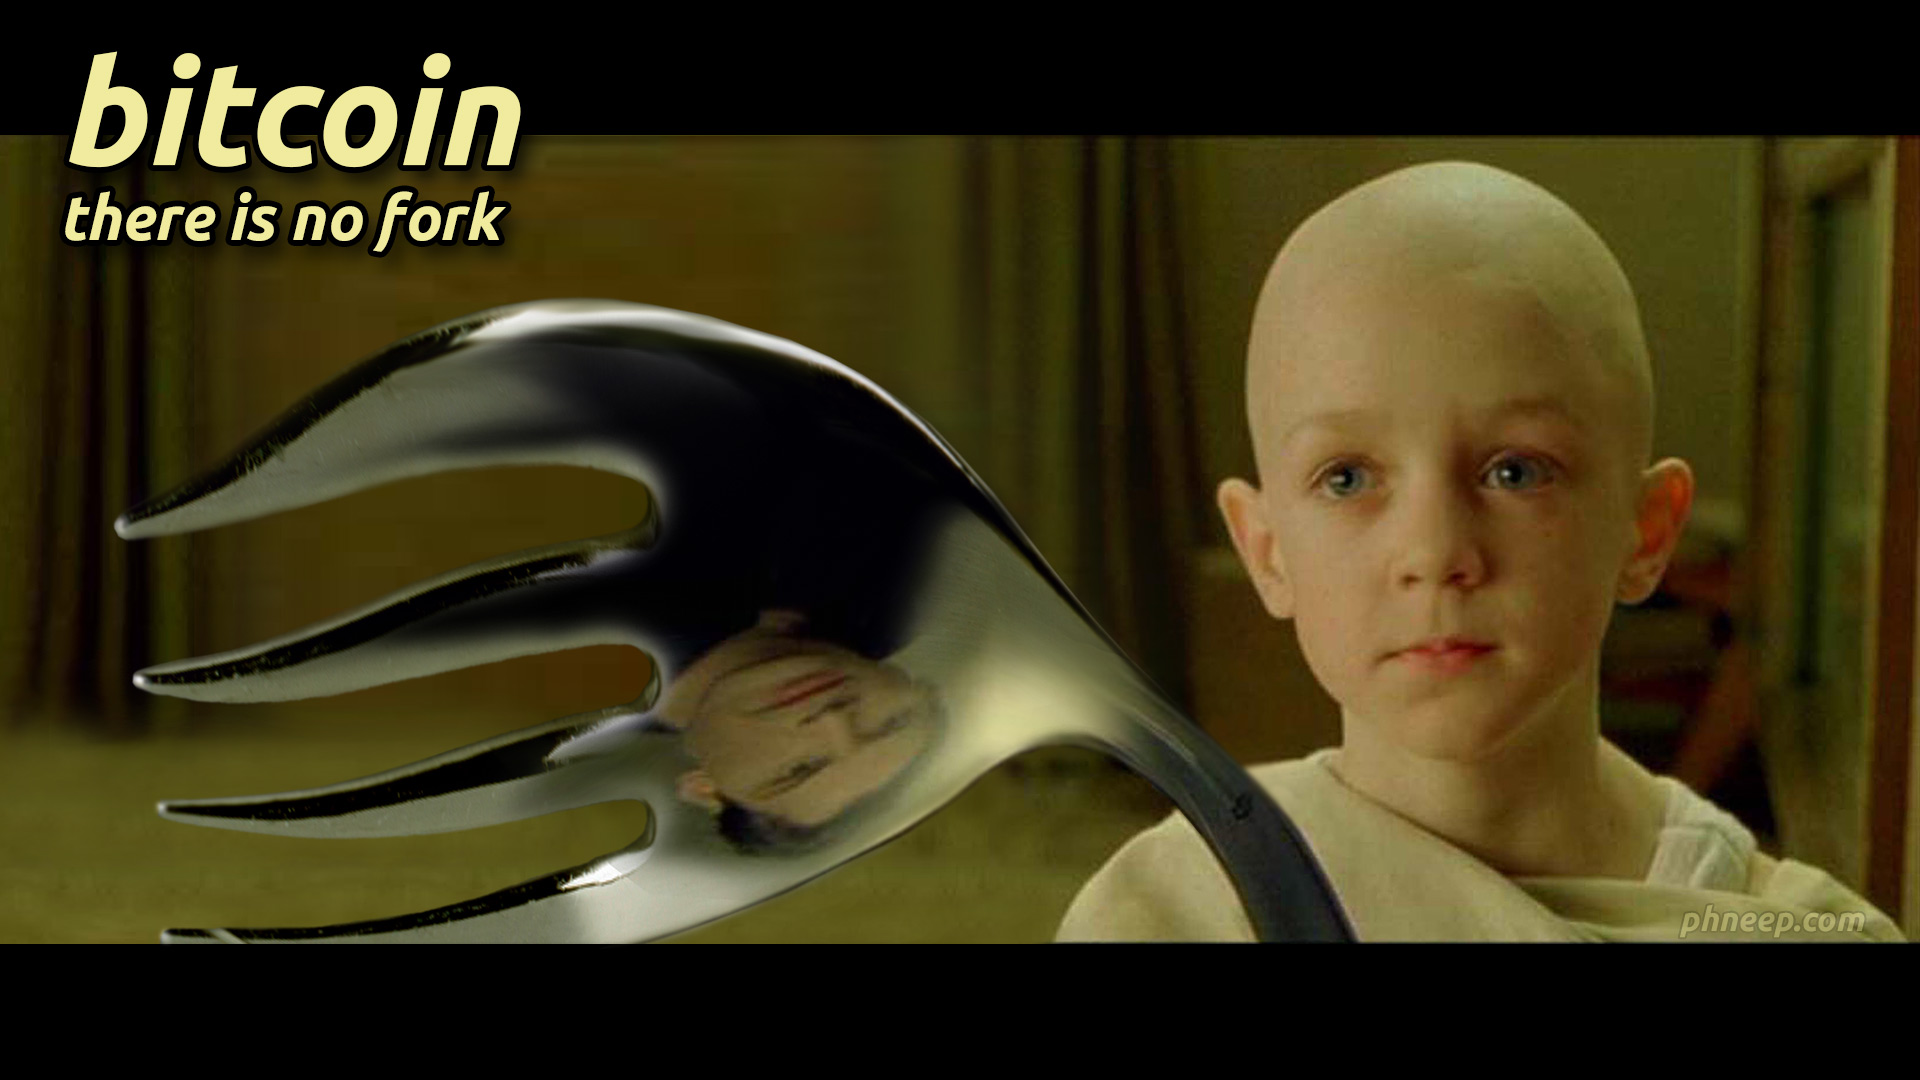 Matrix-Bitcoin-Spoon1